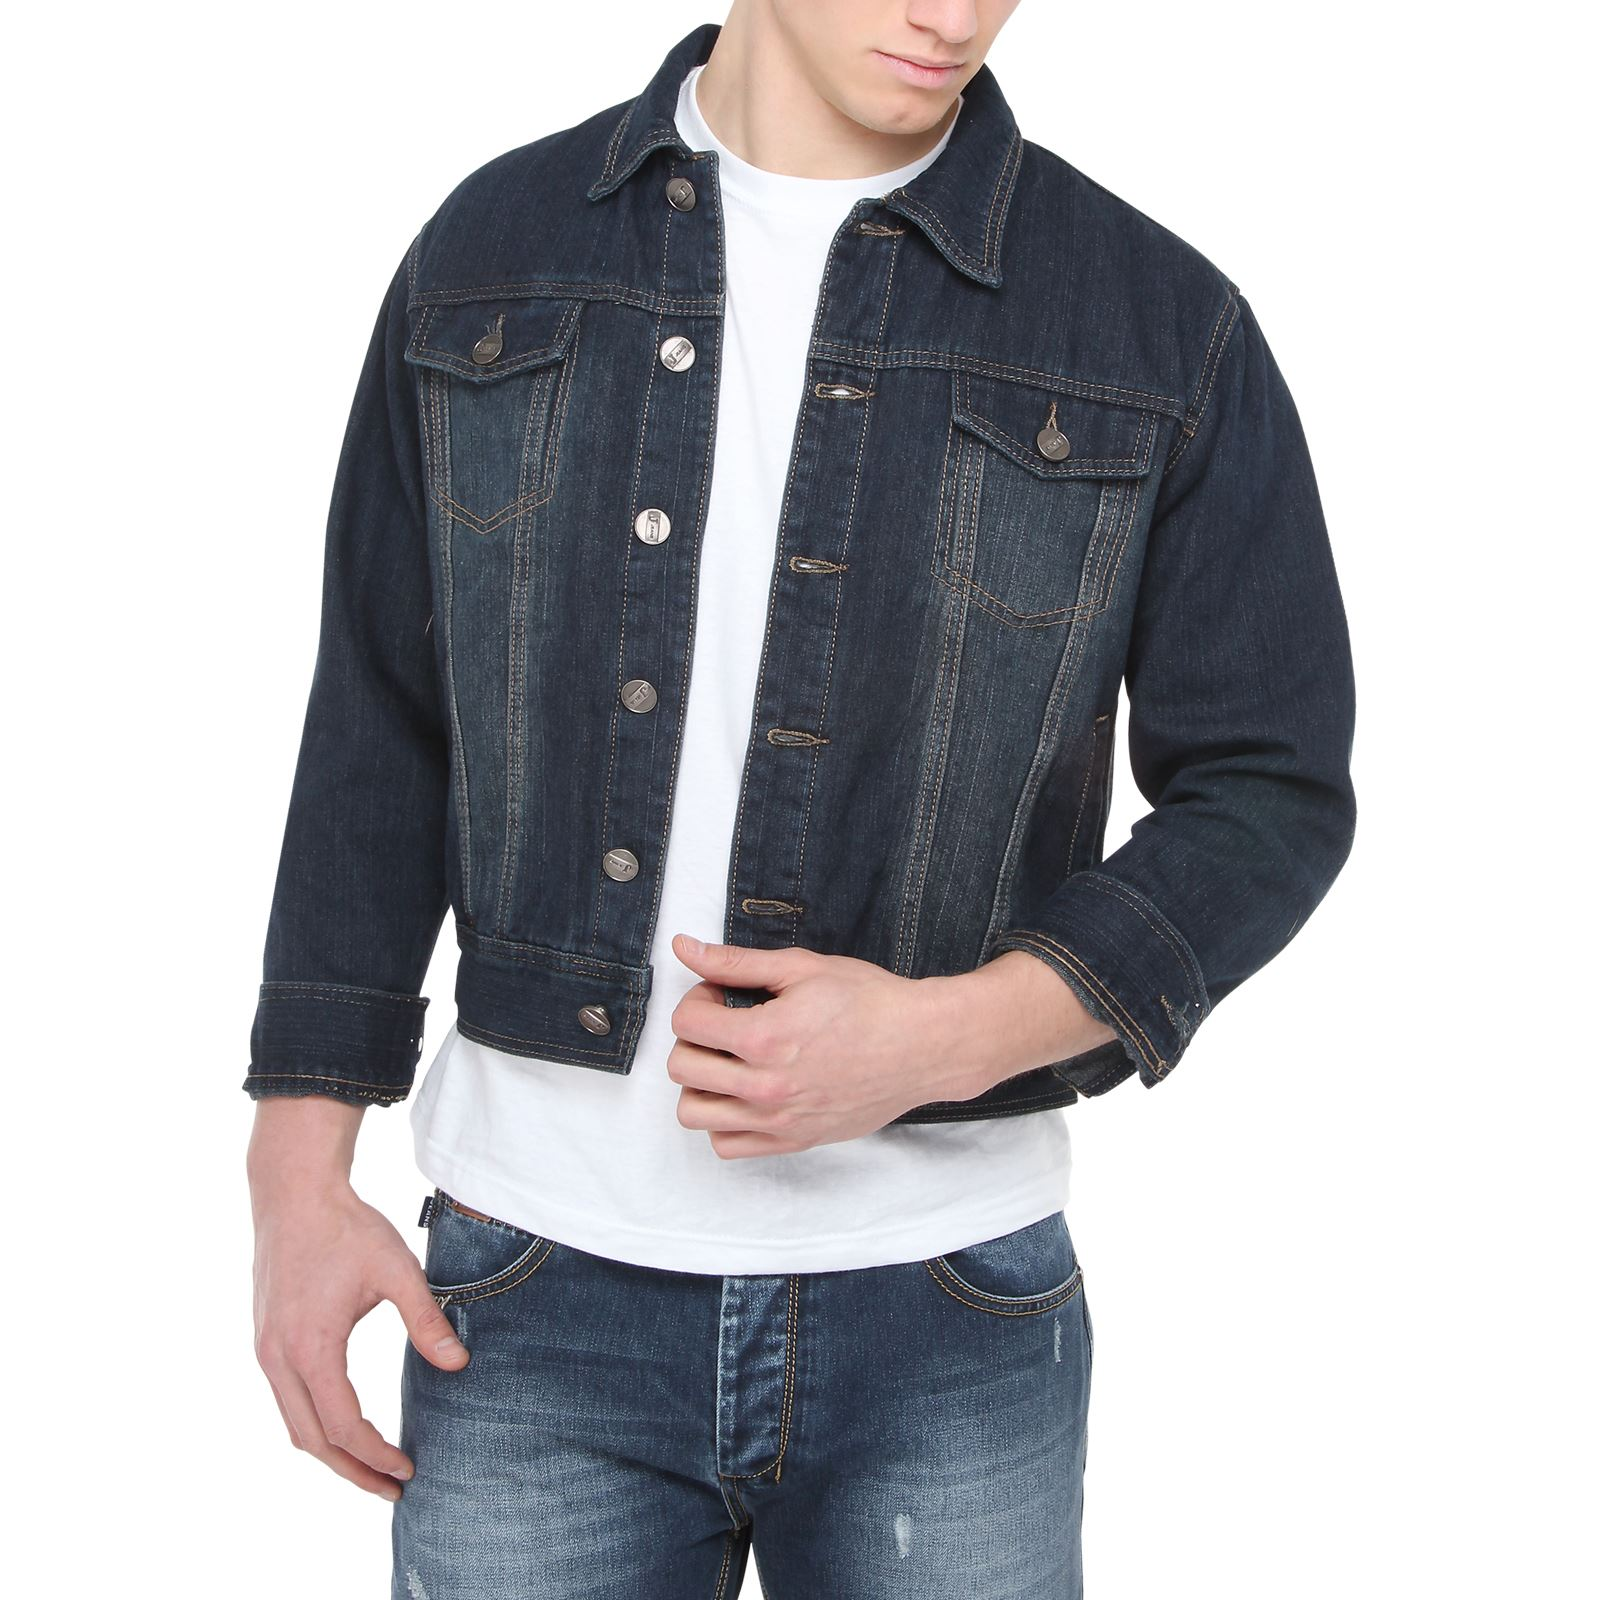 blouson veste homme vintage jean denim d lav coupe motard. Black Bedroom Furniture Sets. Home Design Ideas